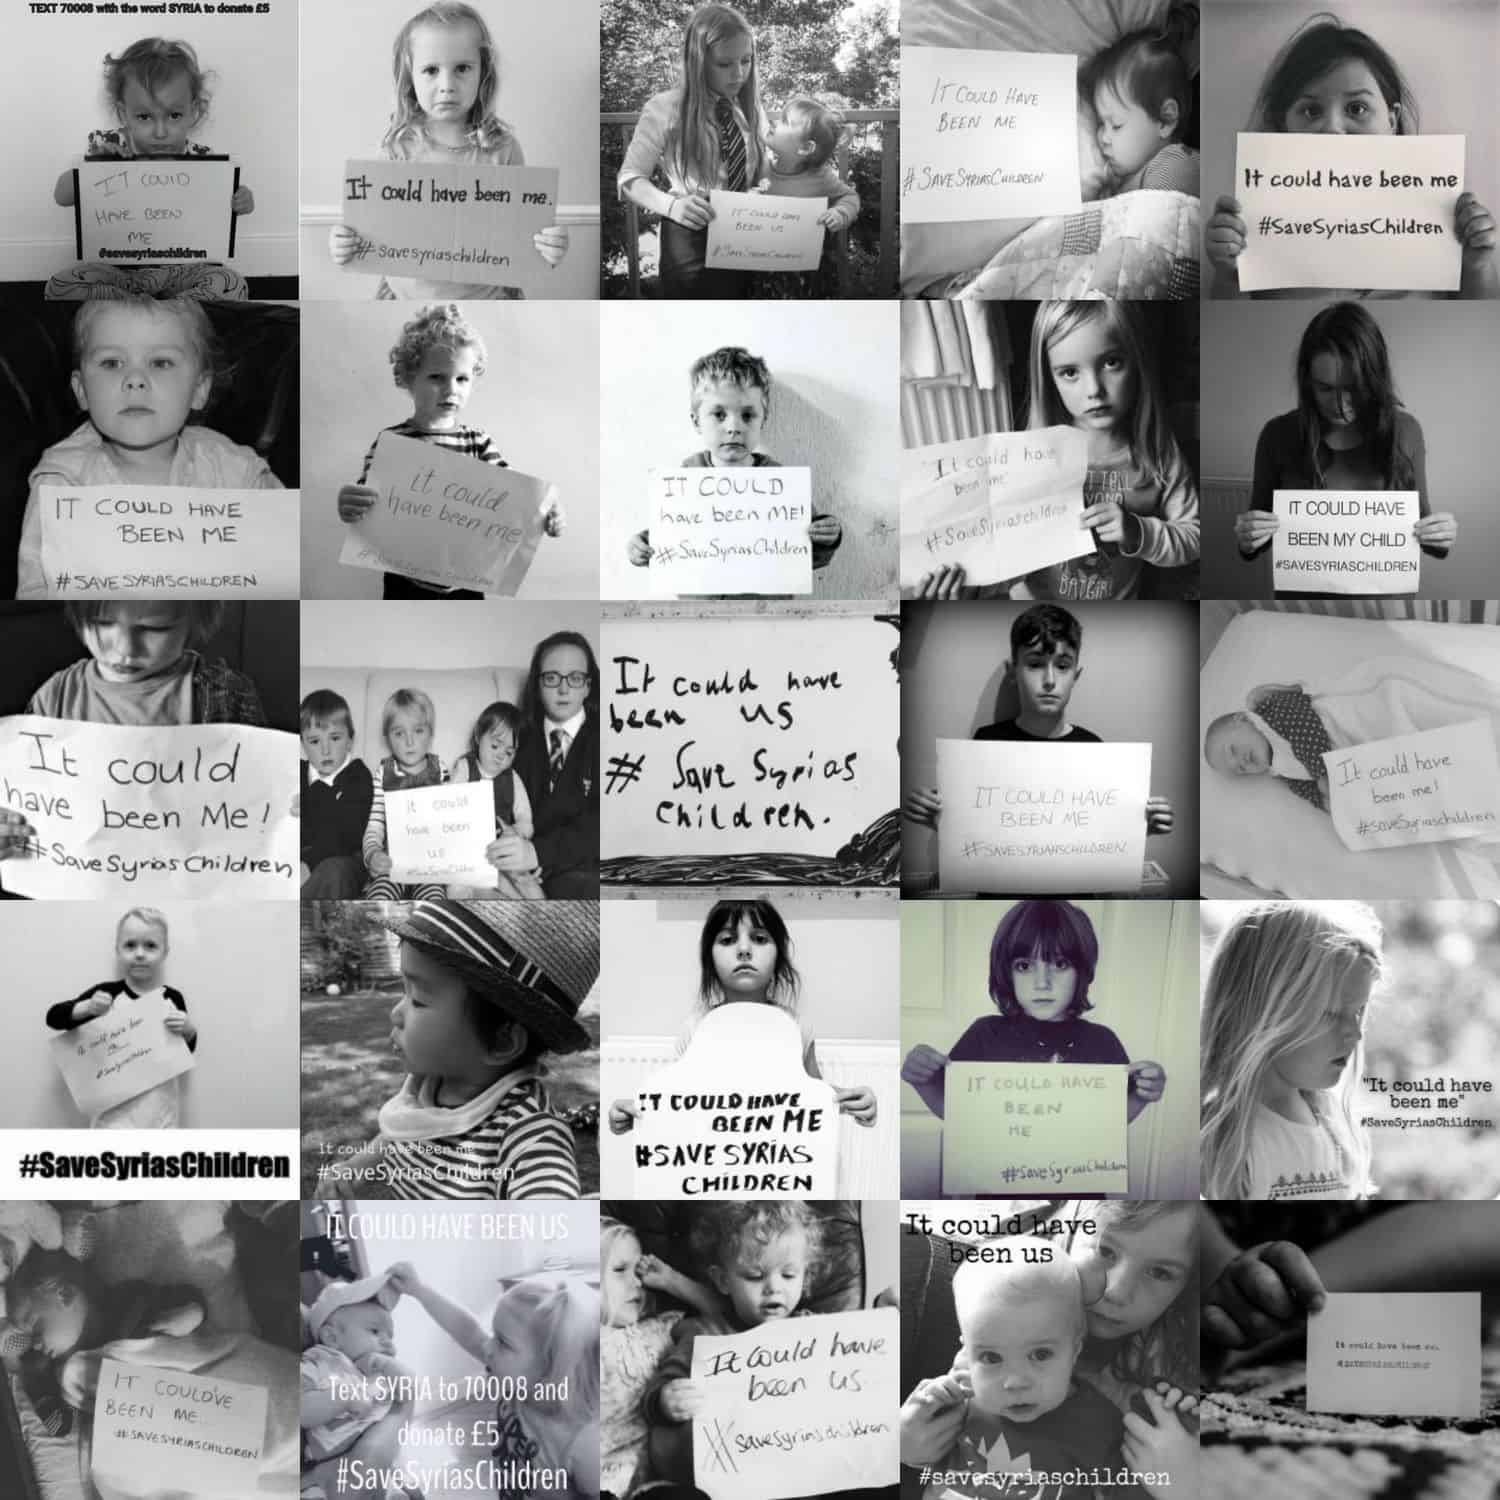 A collection of images from the #SaveSyriasChildren charity campaign